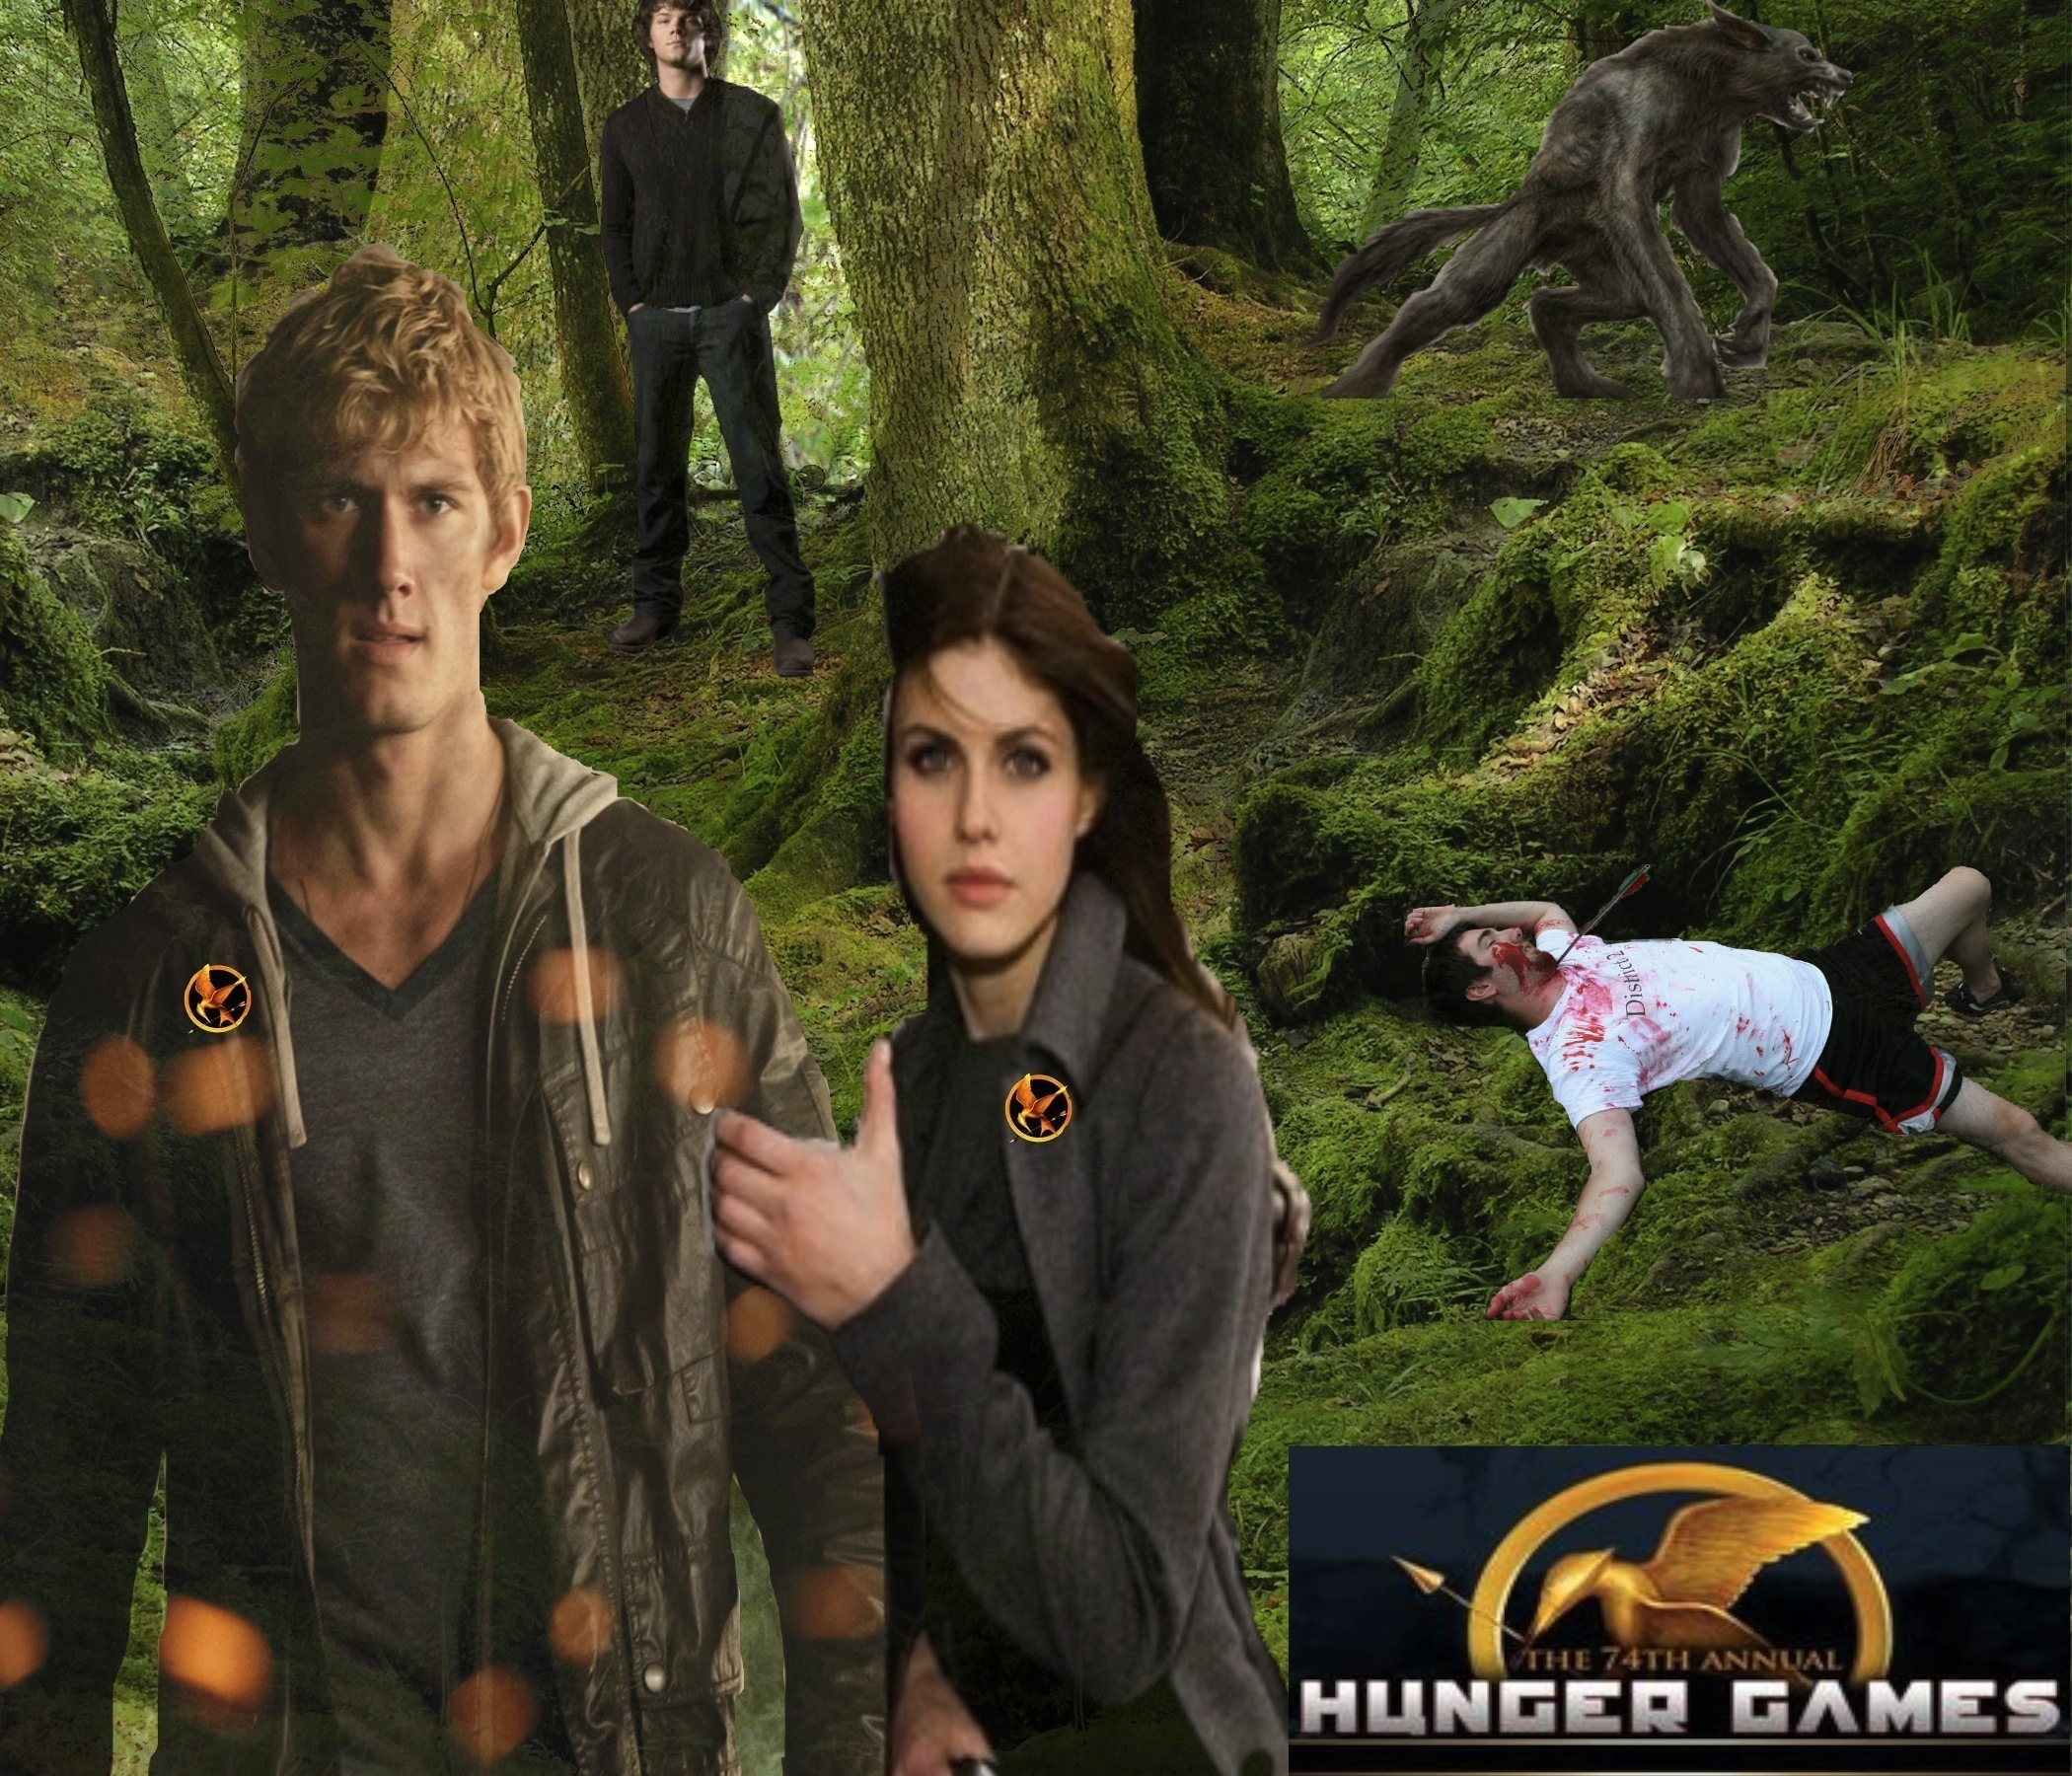 BEEN A WHILE BUT WE BACK! WHOS GONNA WIN THE HUNGER GAMES